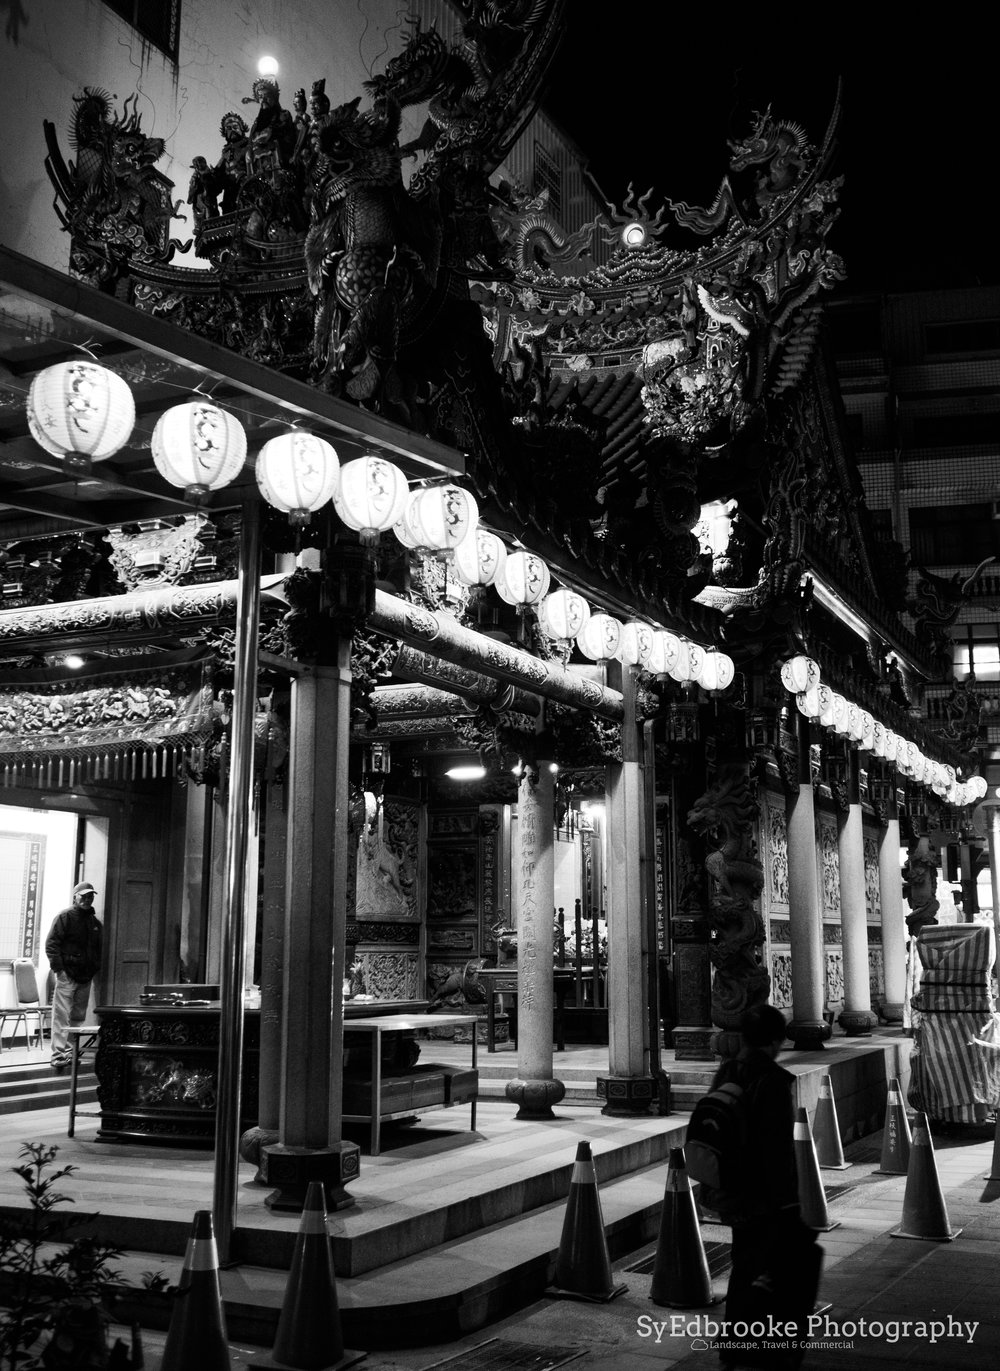 One of the smaller temples at the start of Old Street. f1.8, ISO 1600, 1/40, 17mm